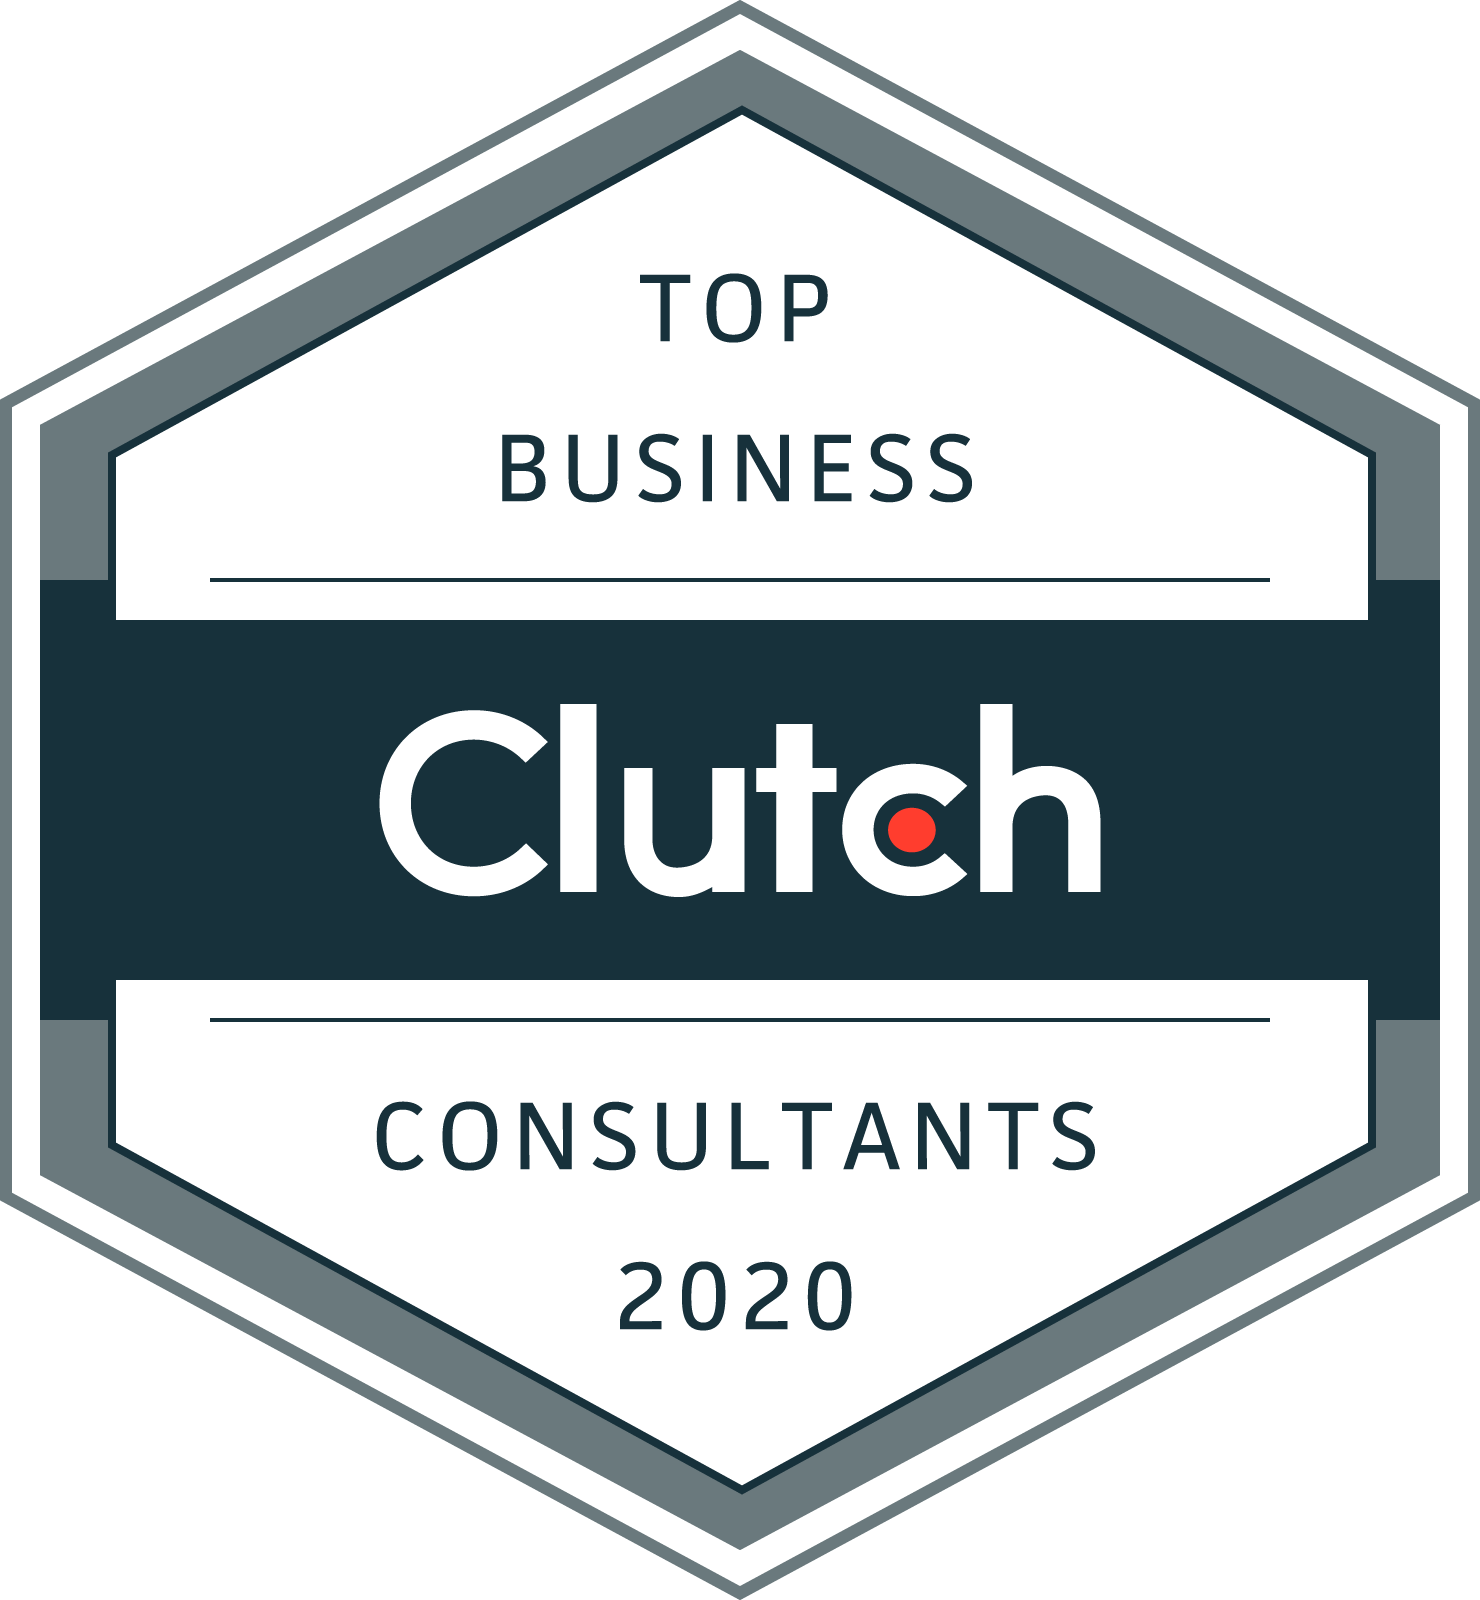 Local Asset - Internet Marketing Agency in Vancouver Named a Top Business Consultant Firm by Clutch